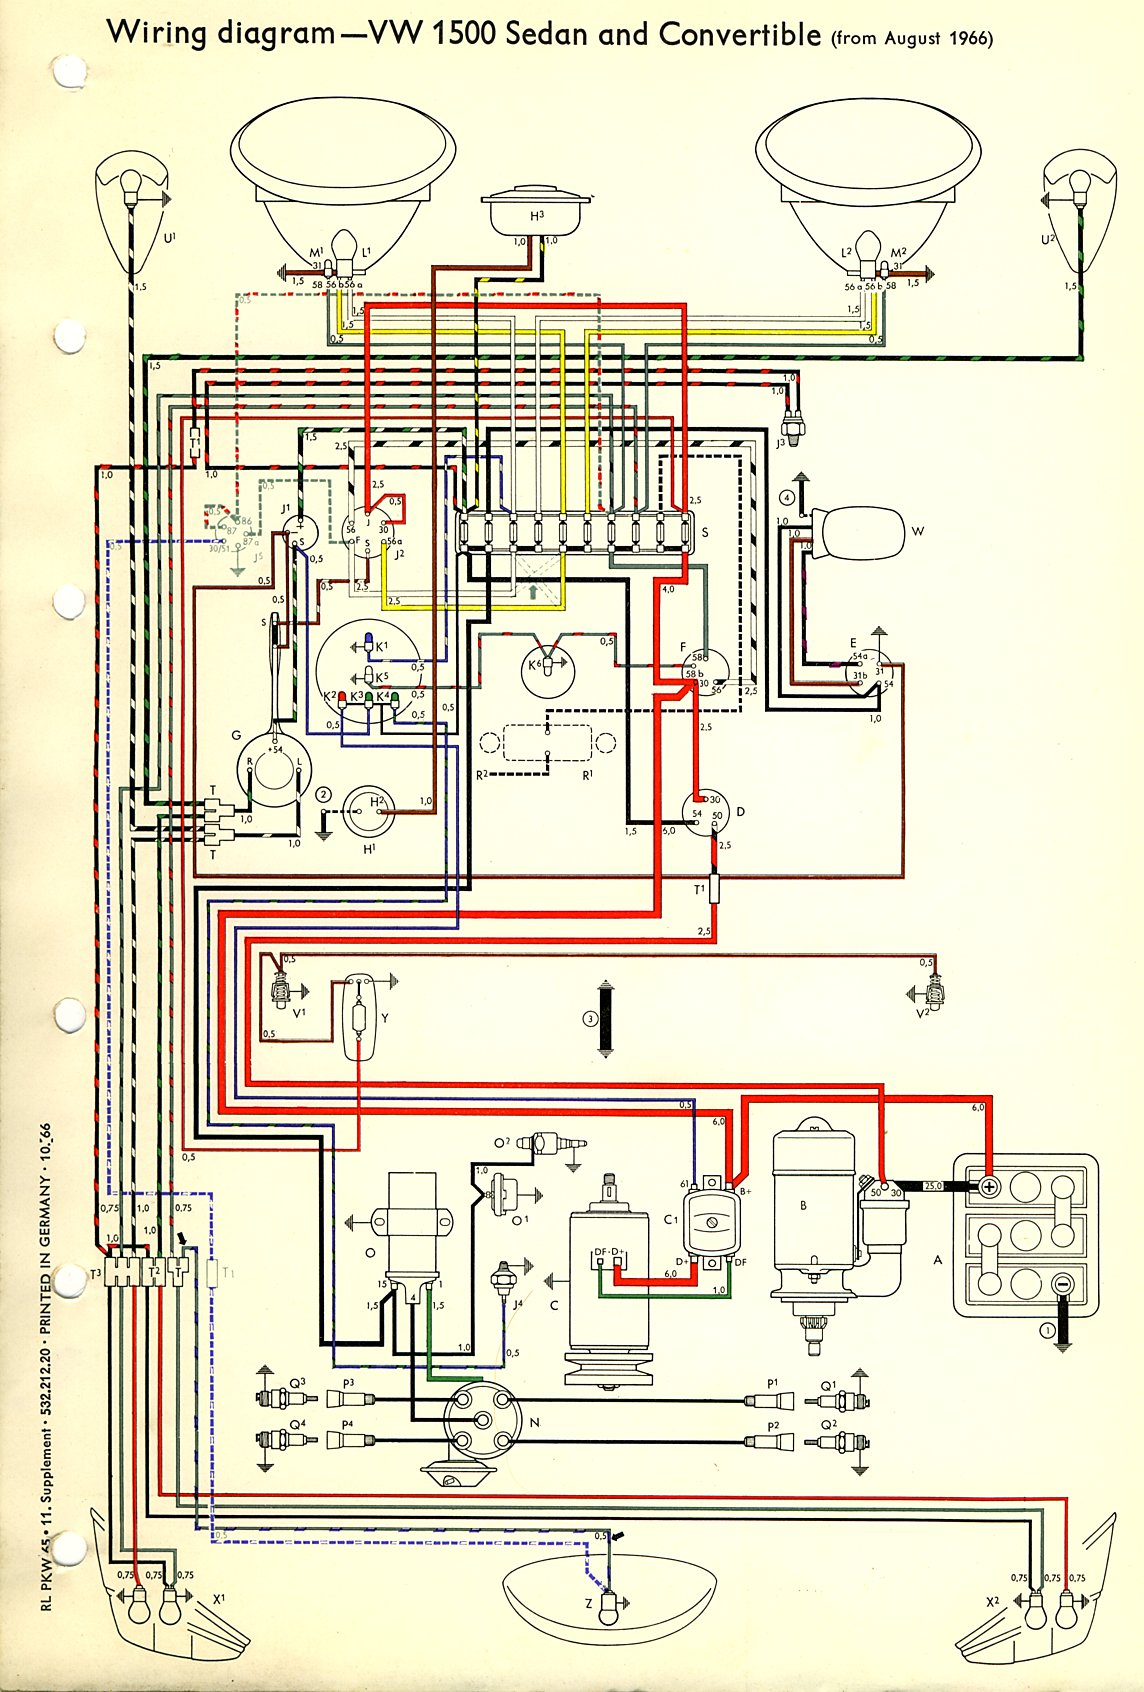 1969 vw bus wiring harness - wiring diagrams drab-tunnel -  drab-tunnel.alcuoredeldiabete.it  al cuore del diabete